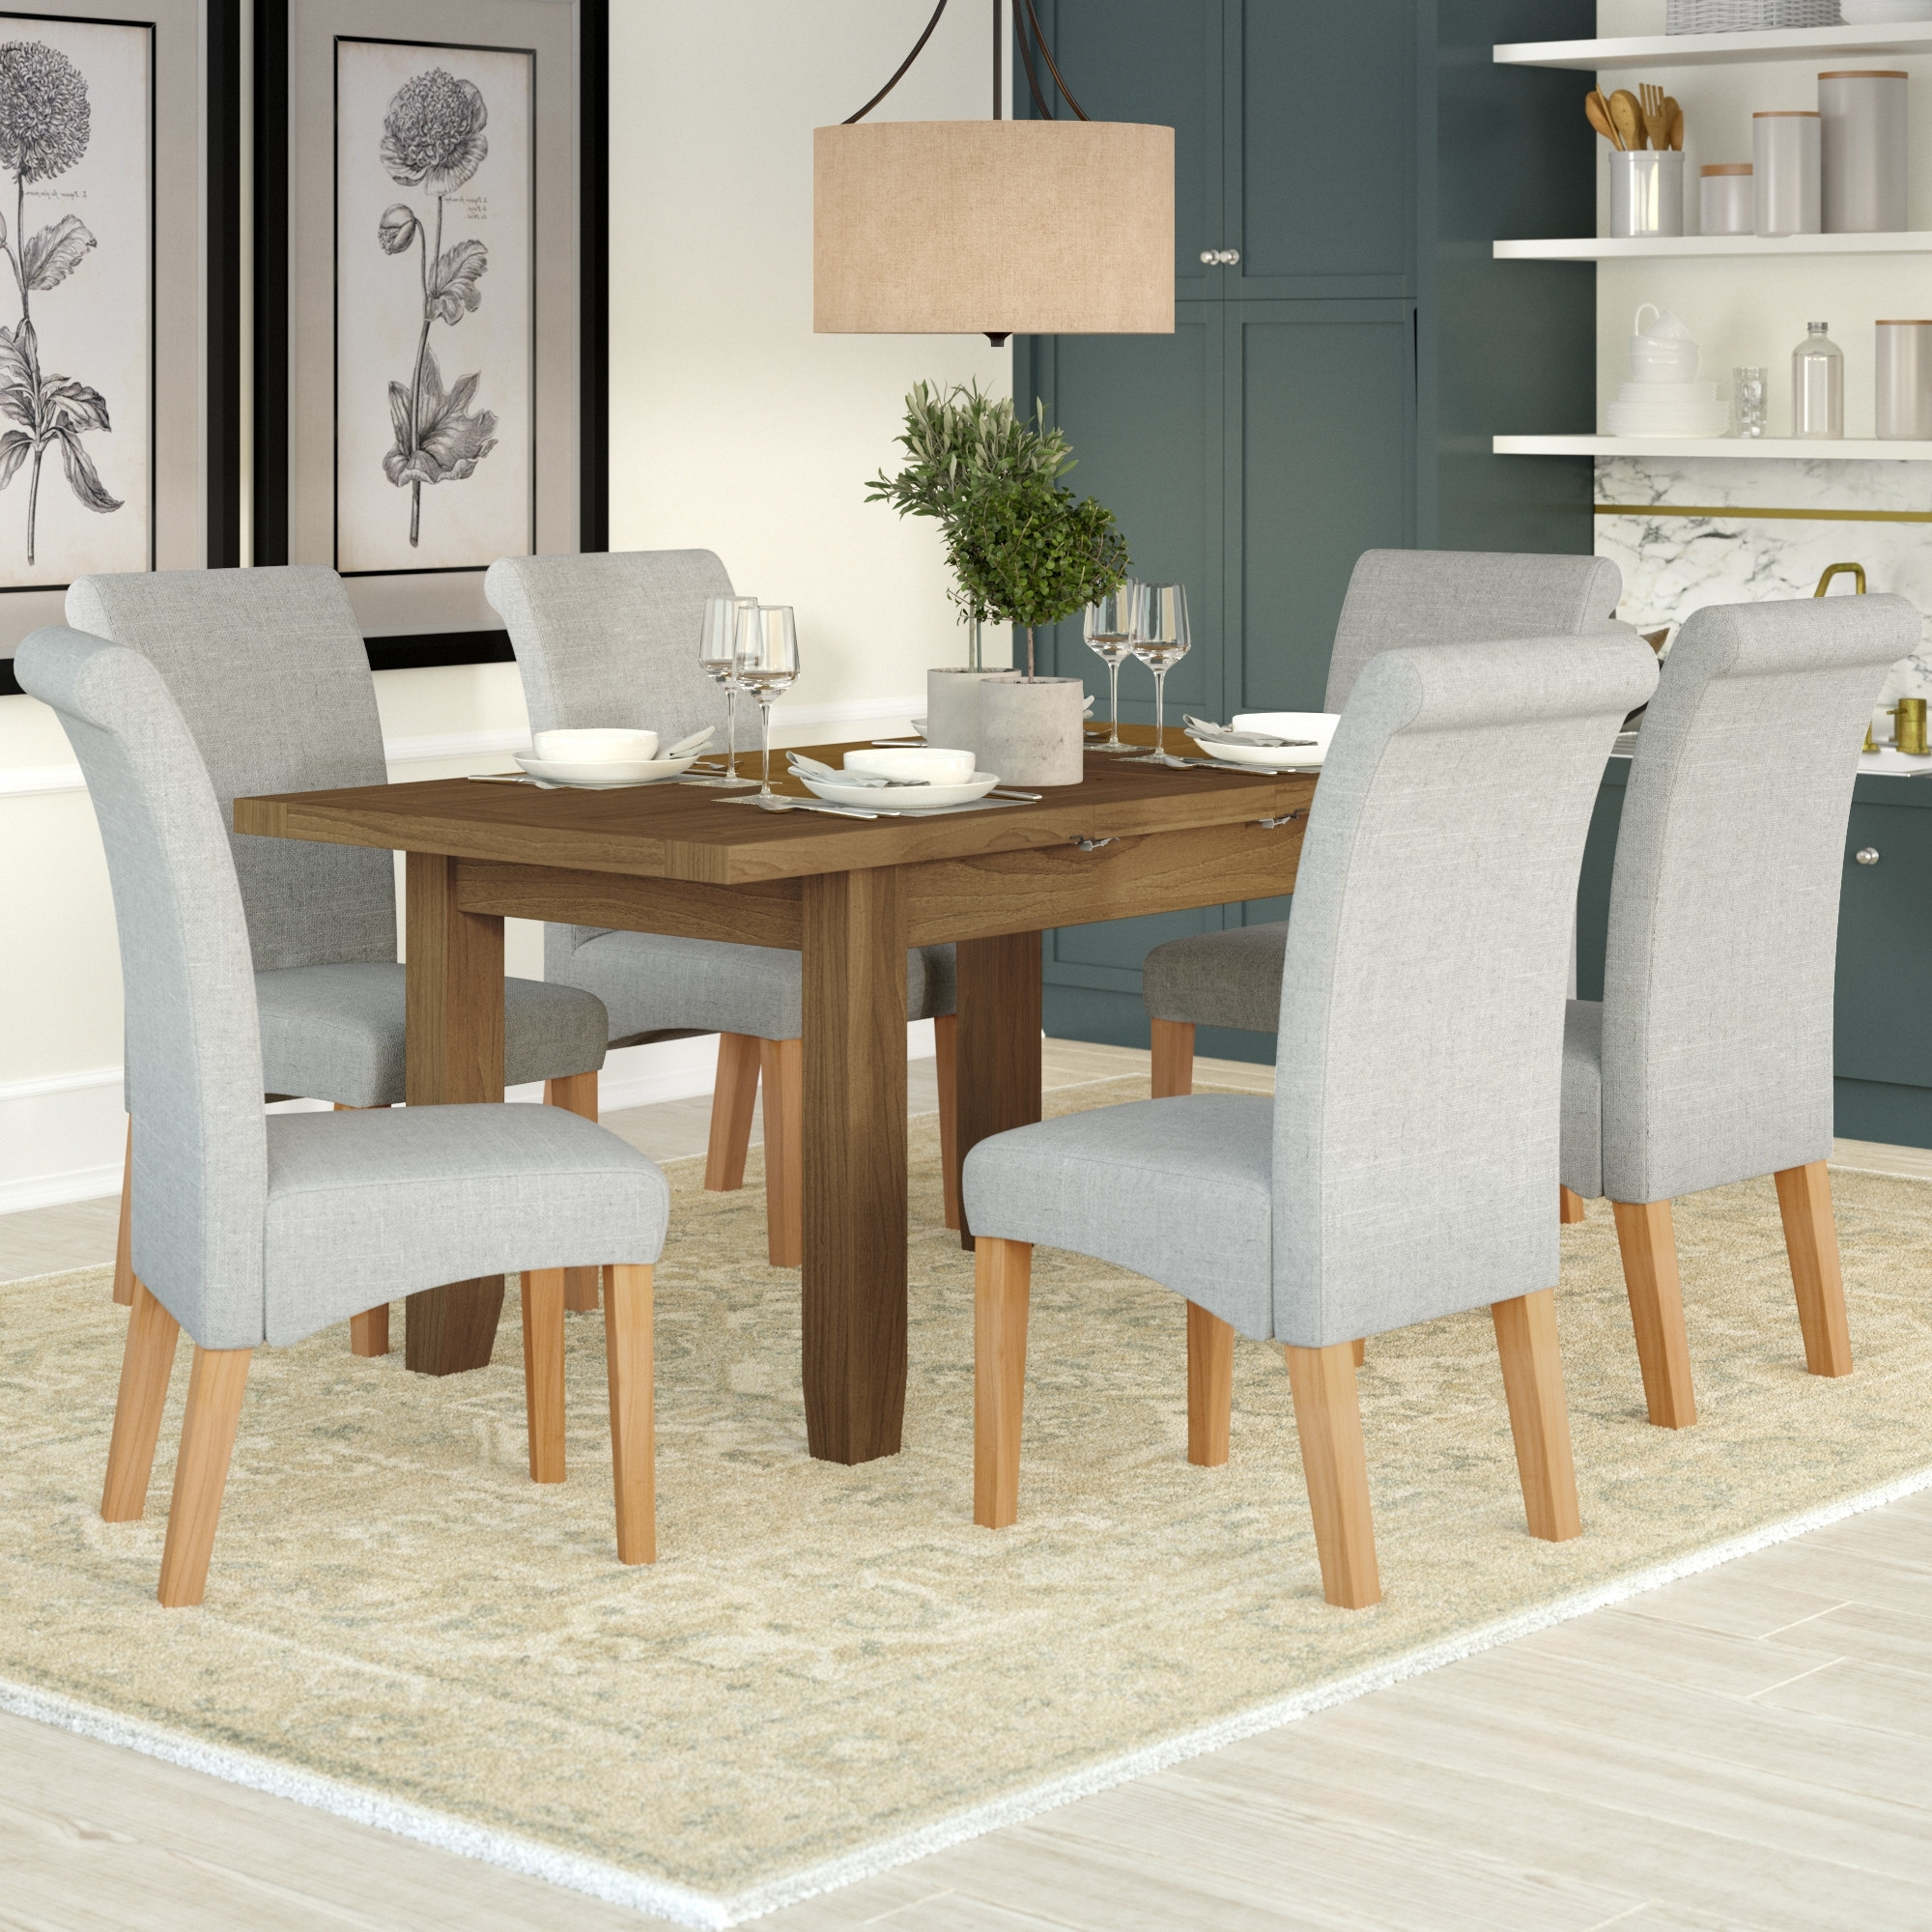 Three Posts Berwick Extendable Dining Table And 6 Chairs & Reviews Pertaining To Favorite Extendable Dining Tables And 6 Chairs (View 12 of 25)